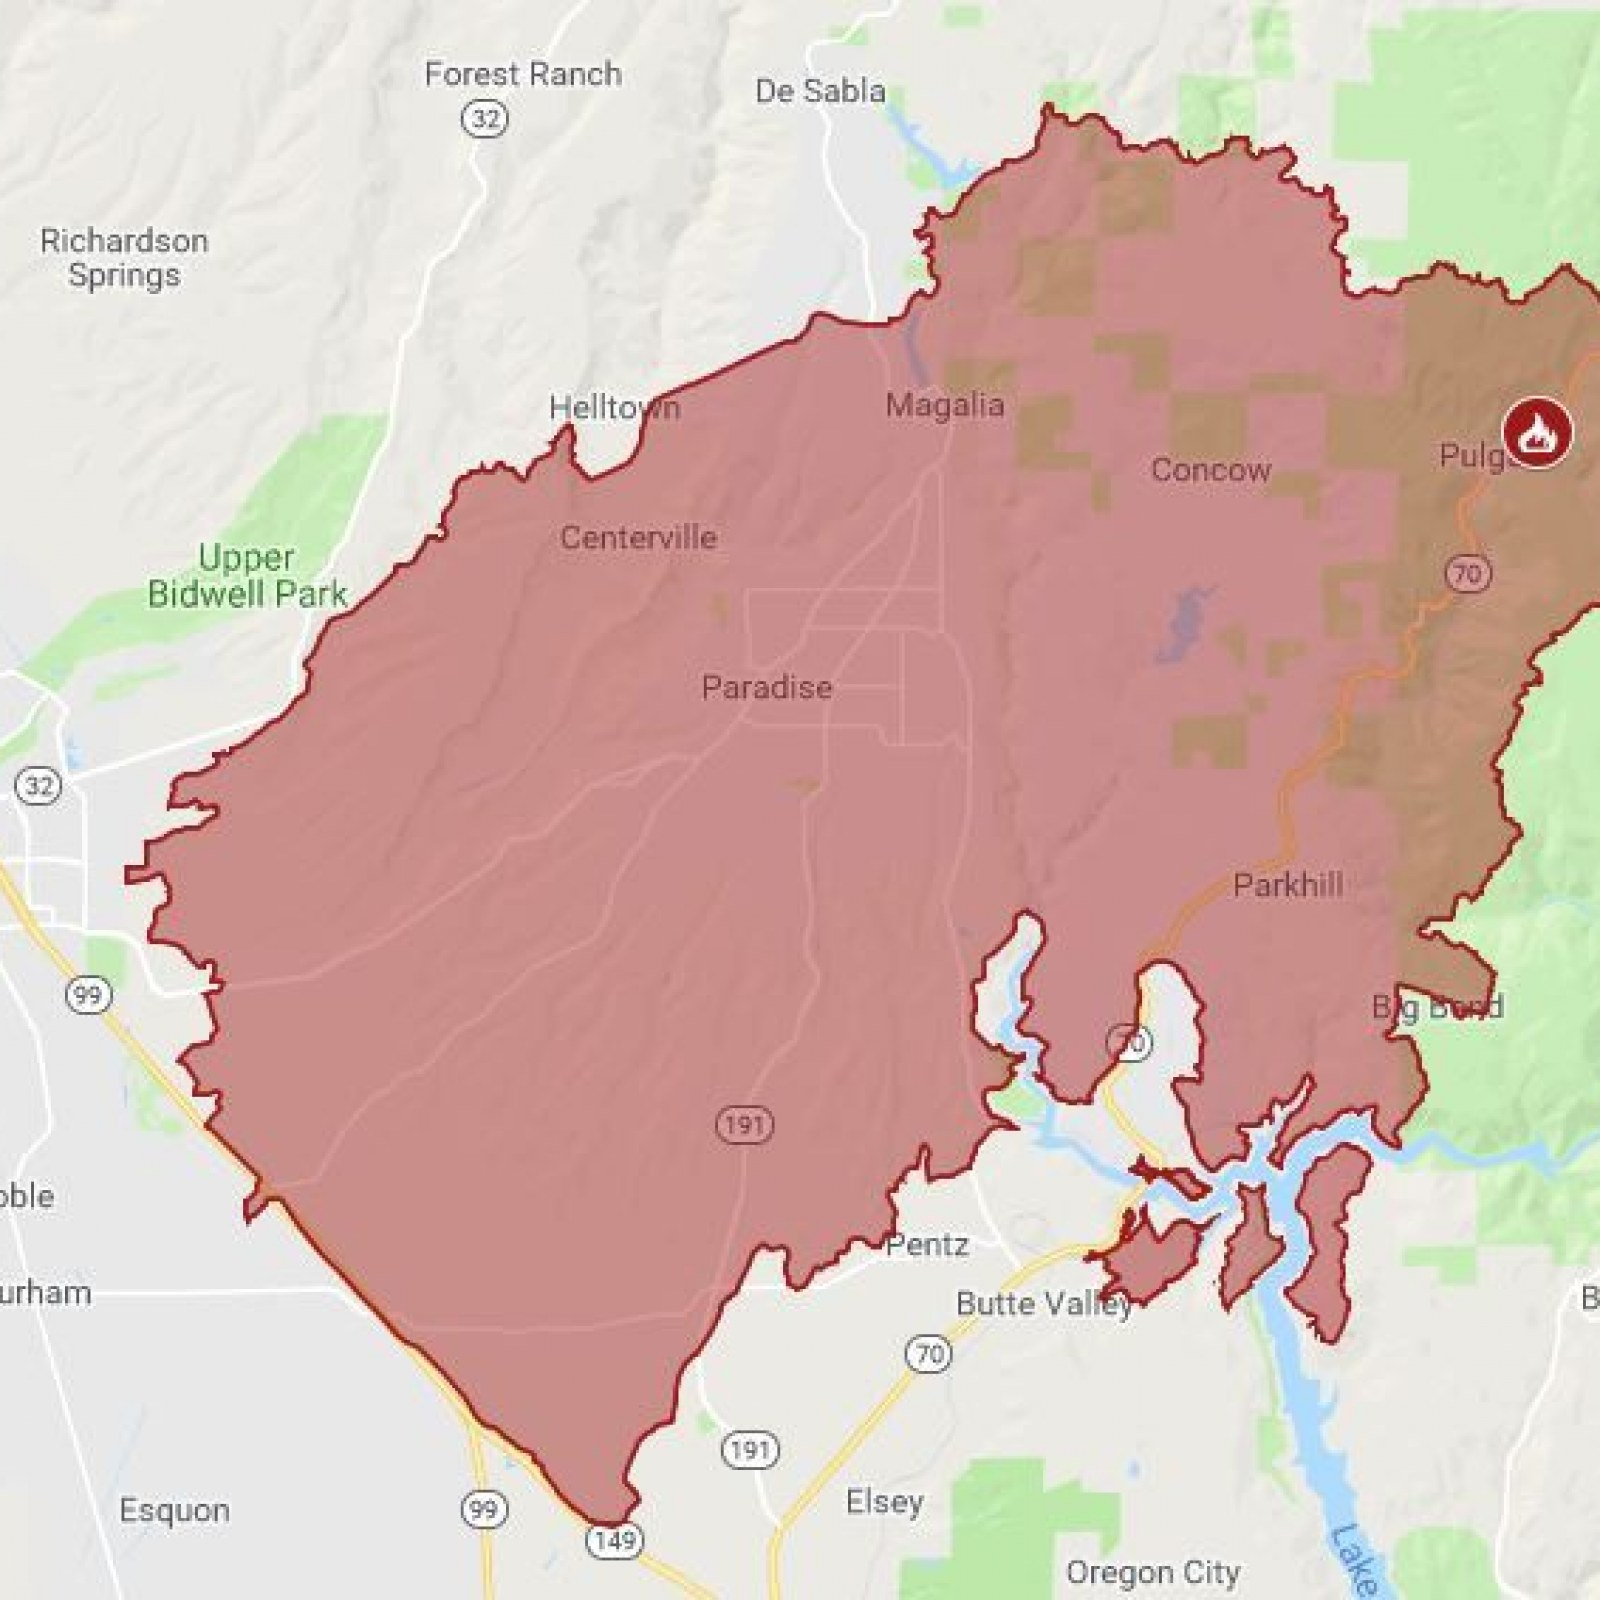 Paradise California Map.California Wildfire Location Maps Update Malibu Paradise Homes